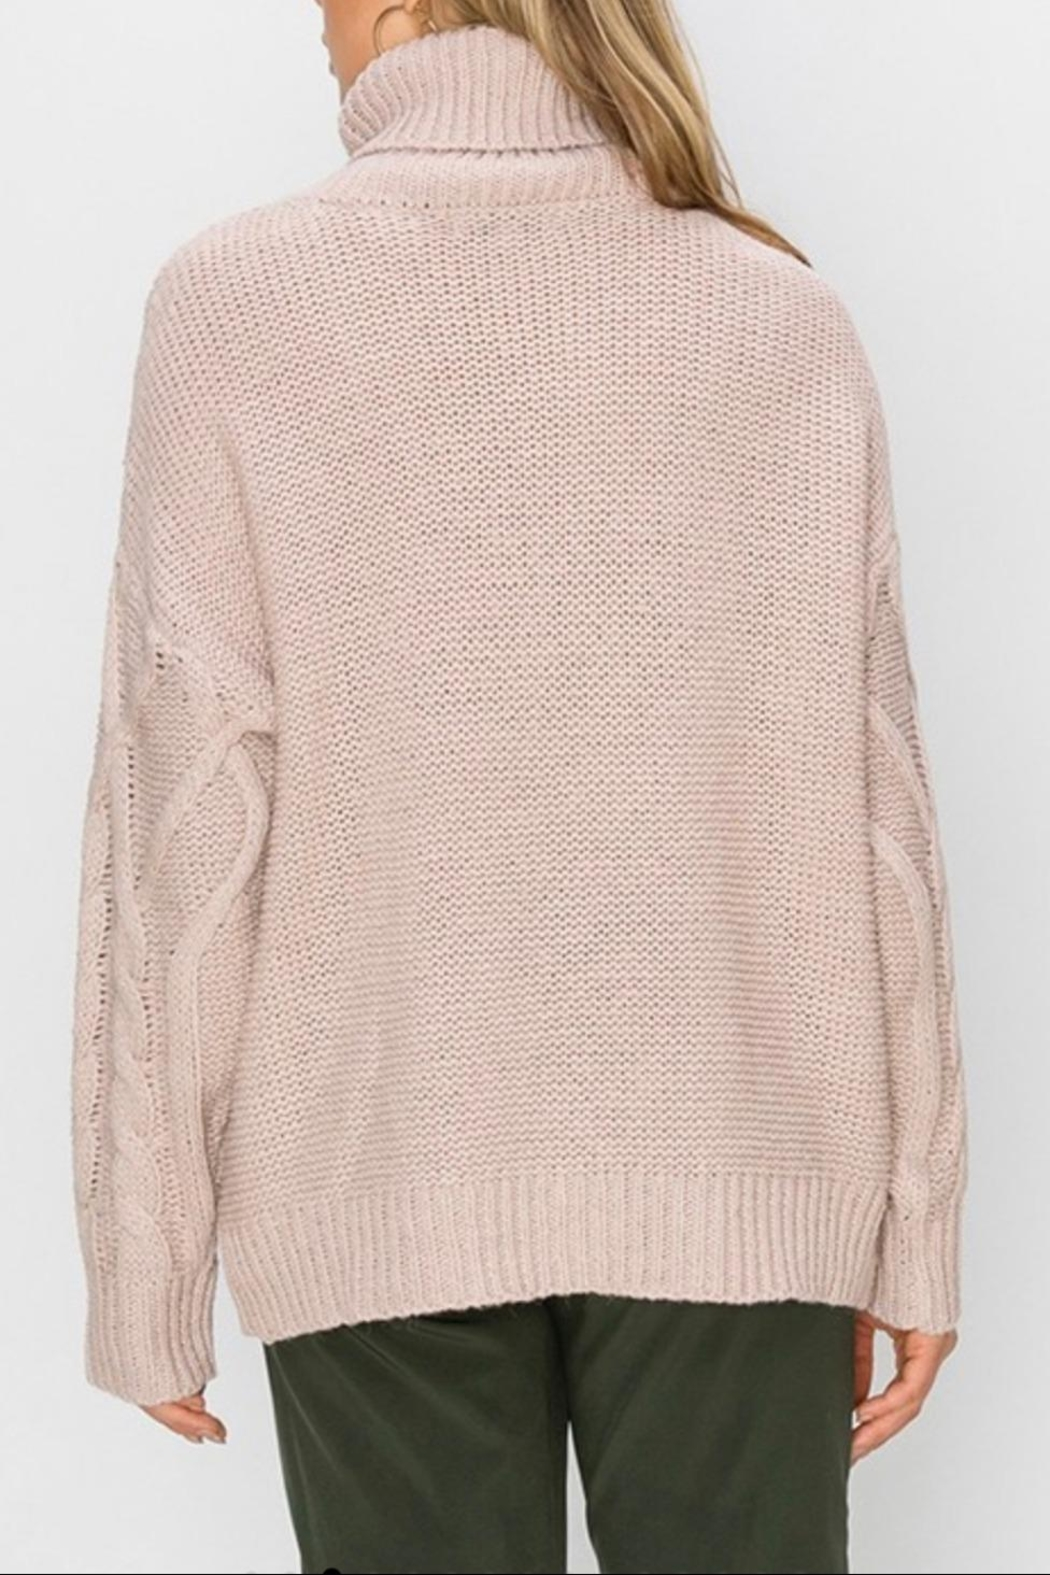 HYFVE Oversized Cable-Knit Sweater - Front Full Image